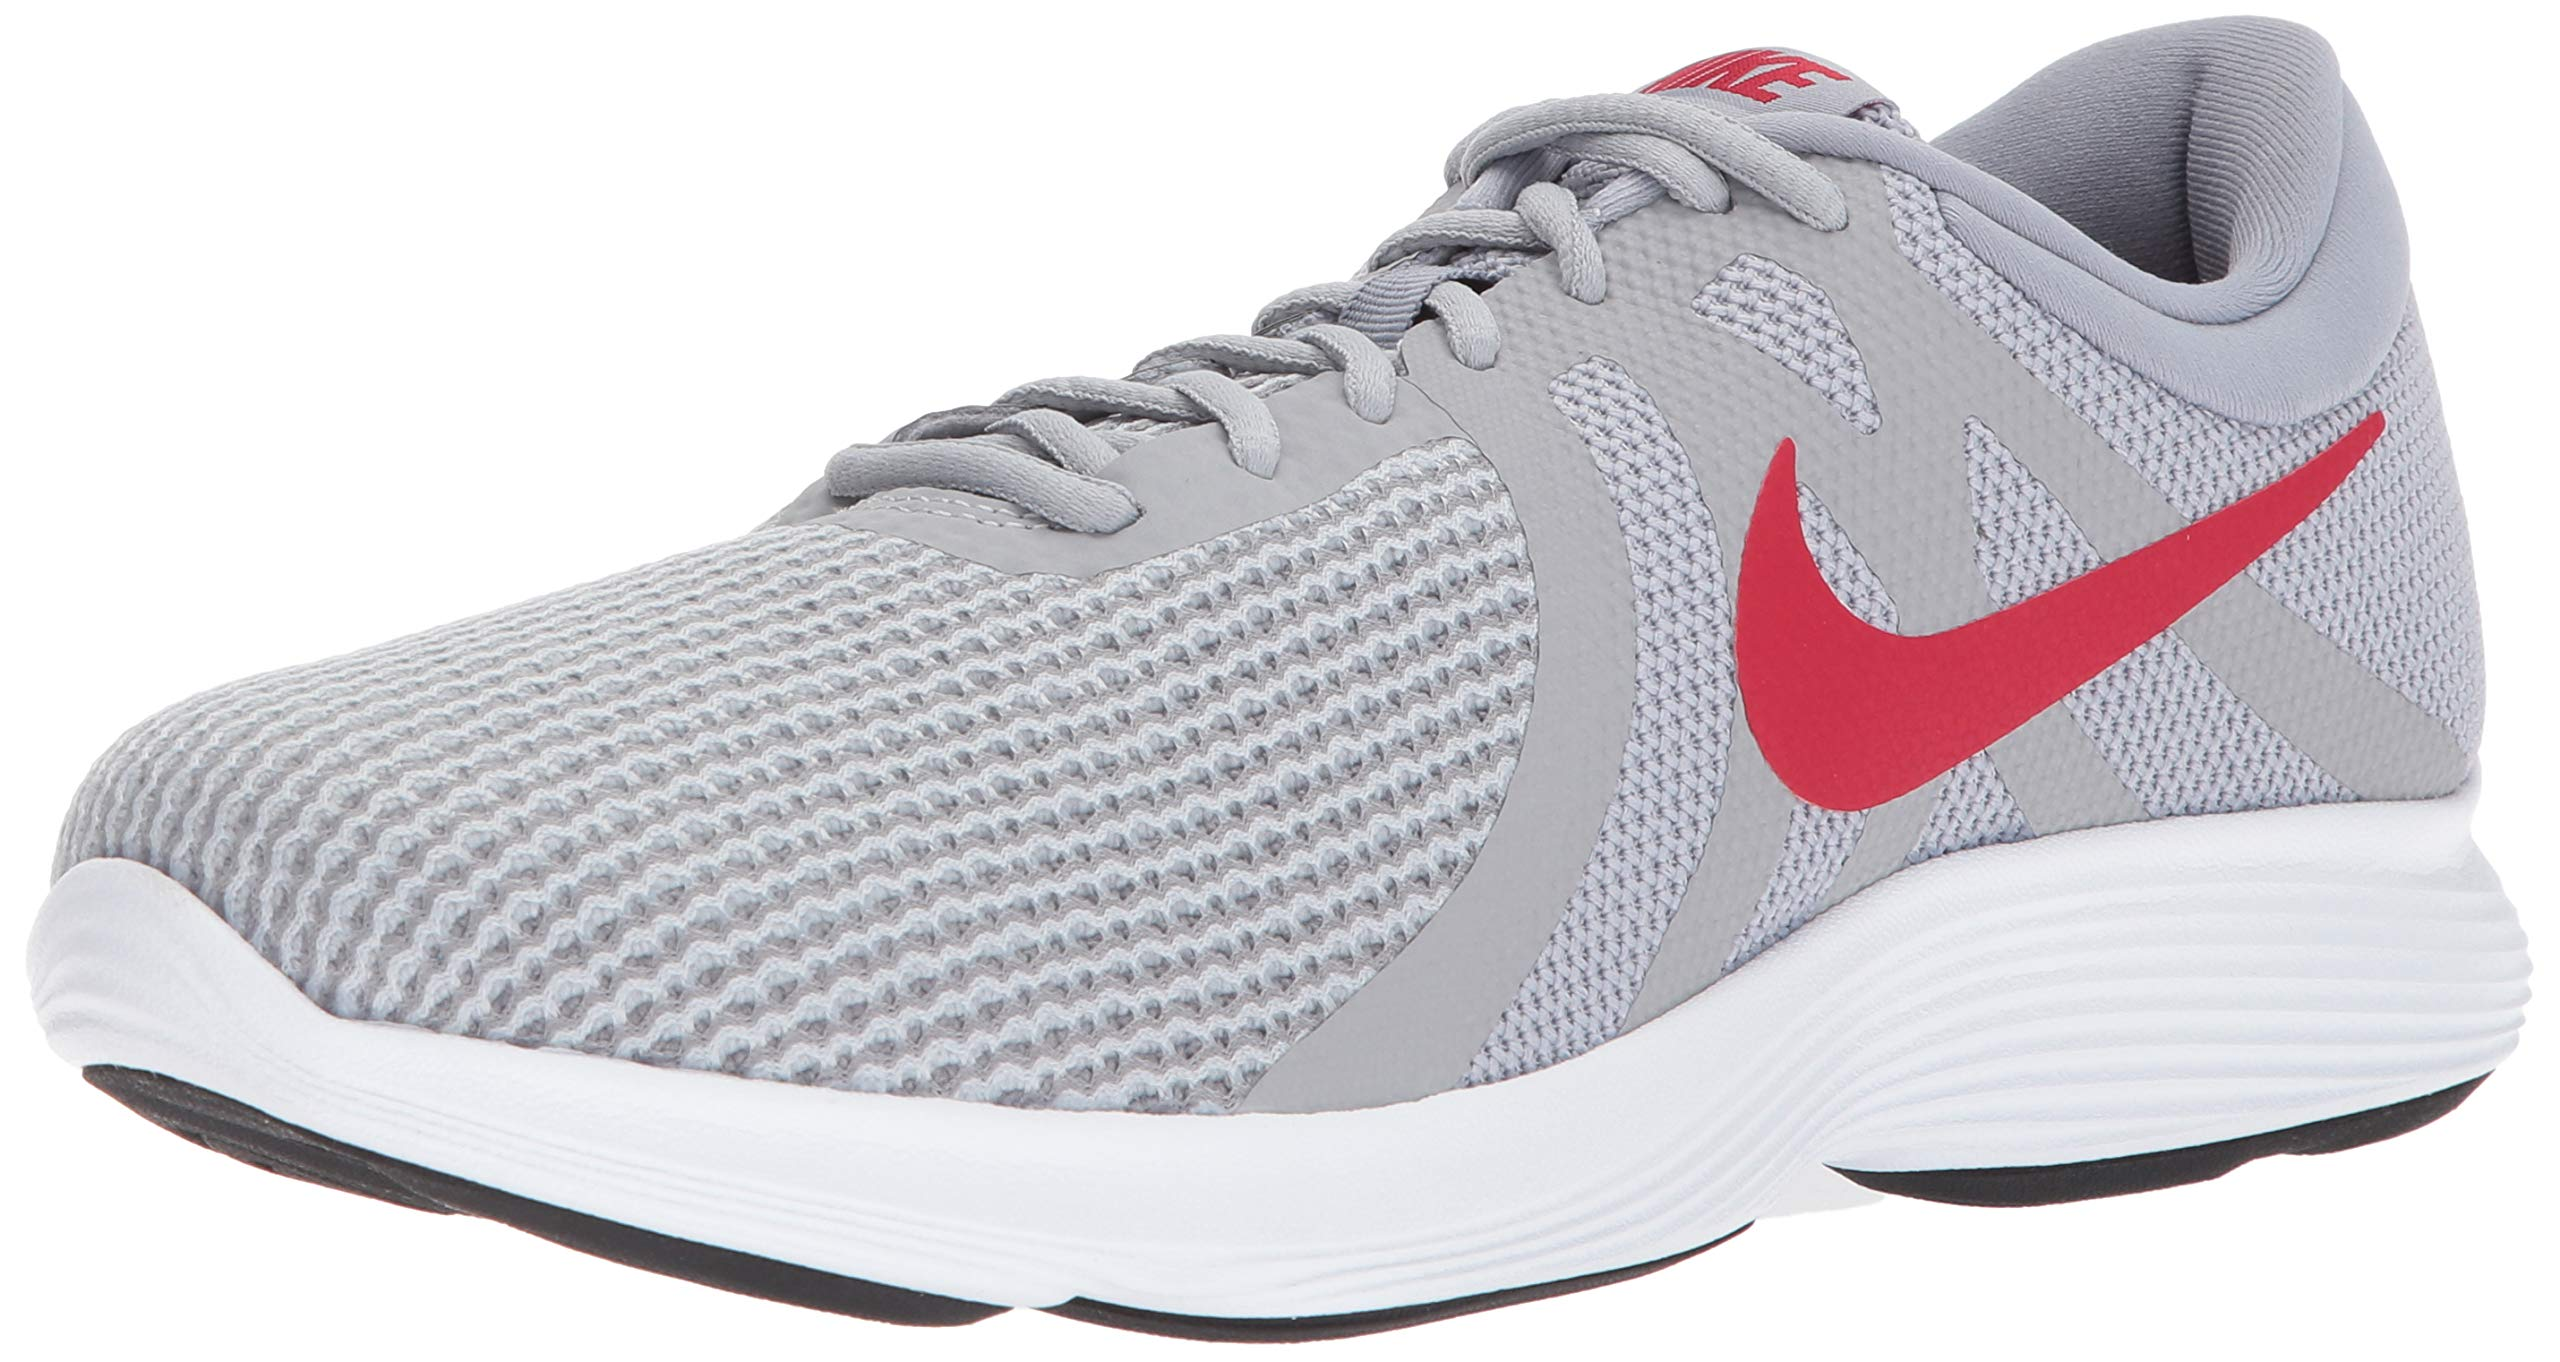 best authentic 456d8 24b3e Galleon - Nike Men s Revolution 4 Running Shoe, Wolf Grey Gym Red-Stealth,  11.5 4E US